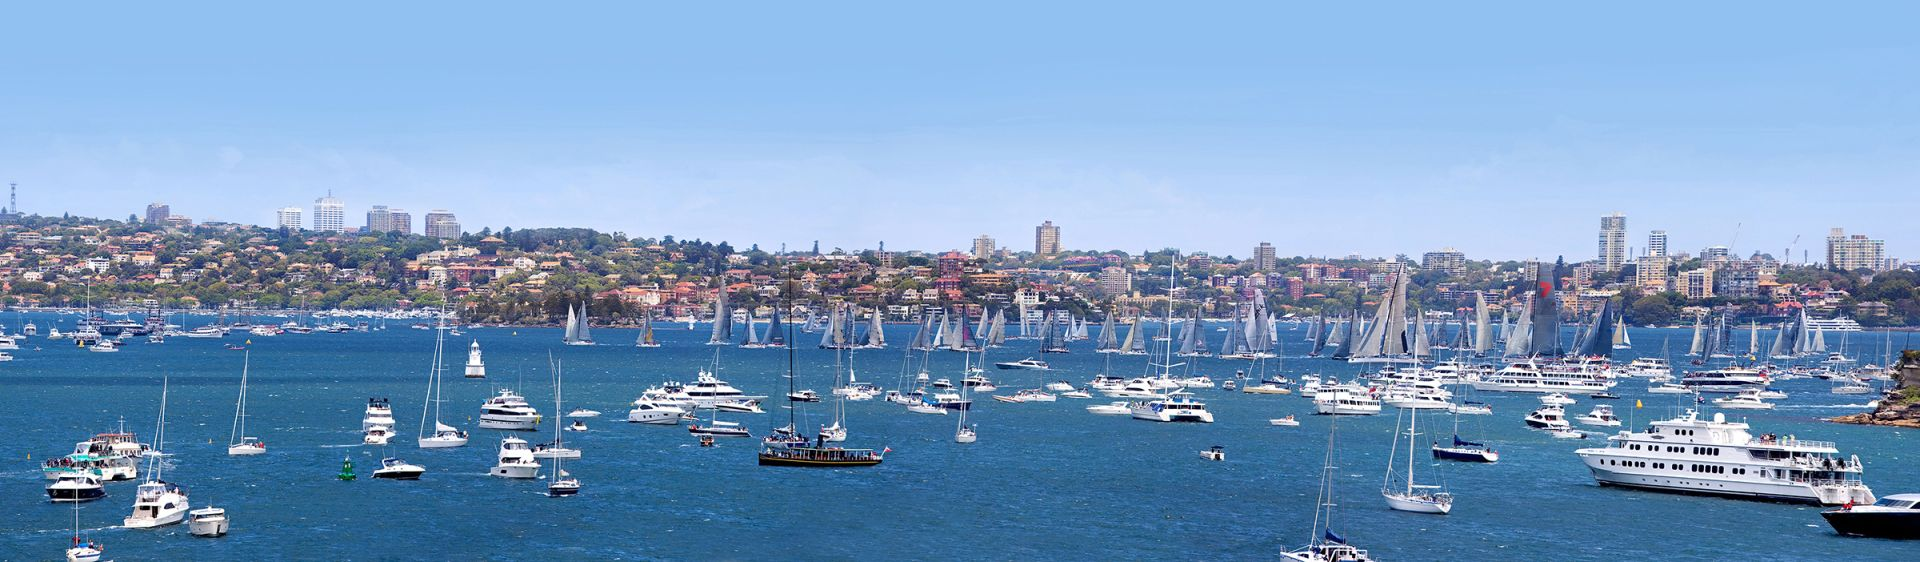 Yachts sailing in the Sydney to Hobart yacht race on Sydney Harbour panorama